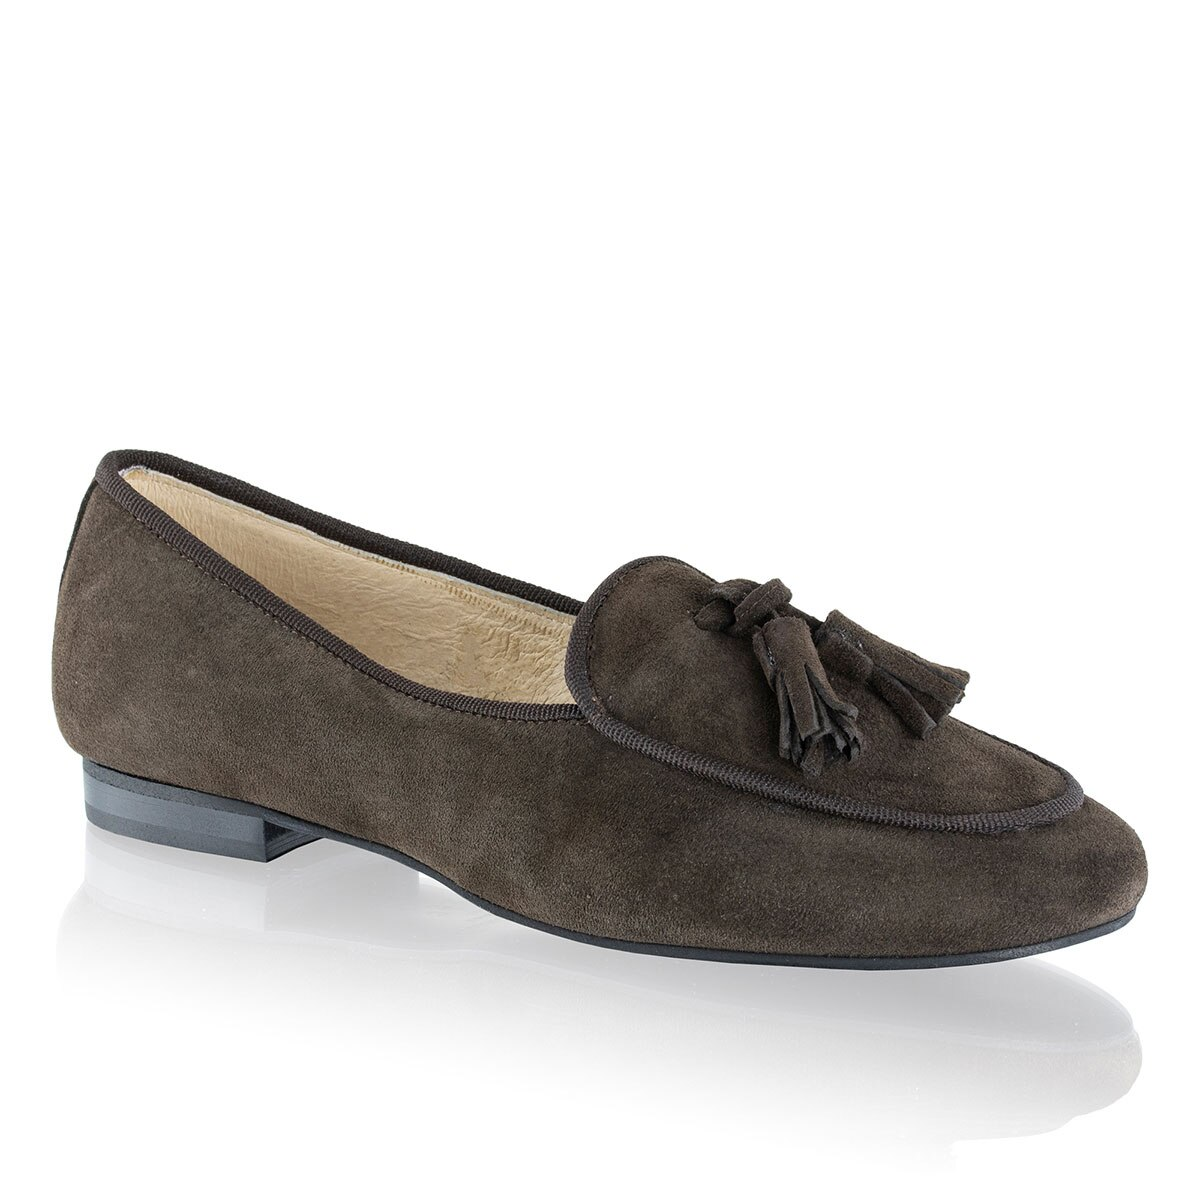 Russell and Bromley BELGIQUE Slip-On With Tassel